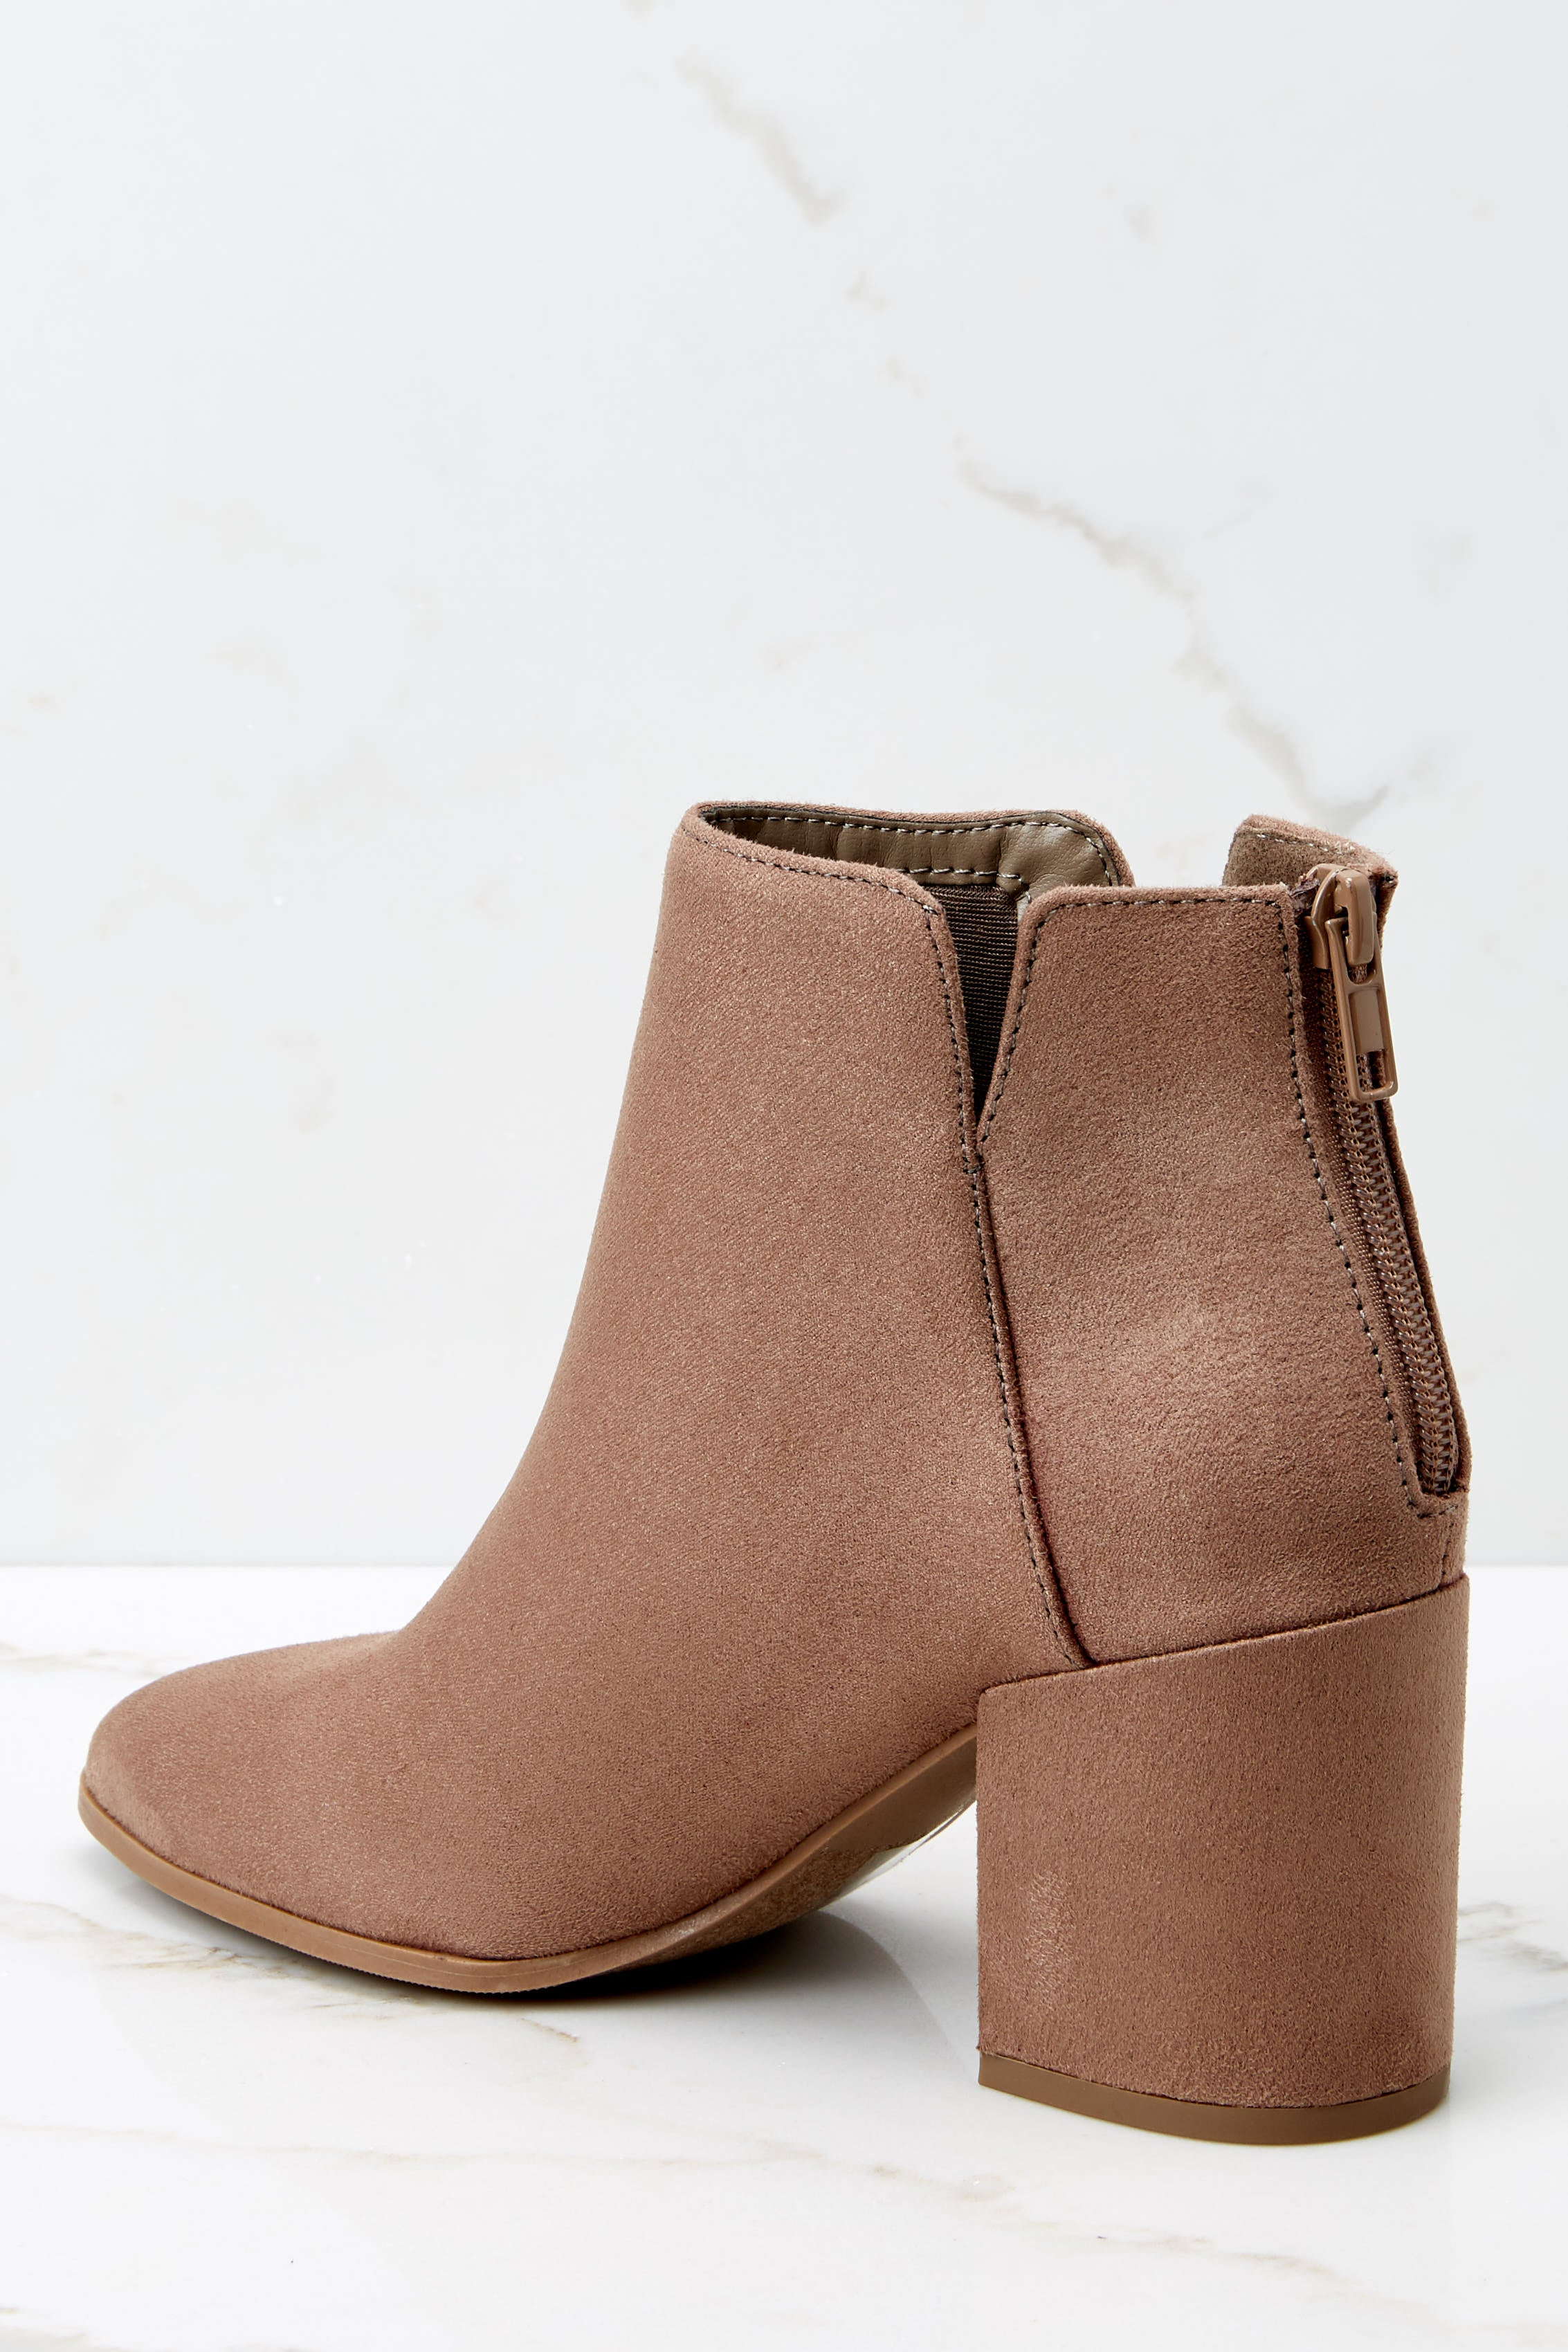 4 Through The City Taupe Ankle Booties at reddressboutique.com